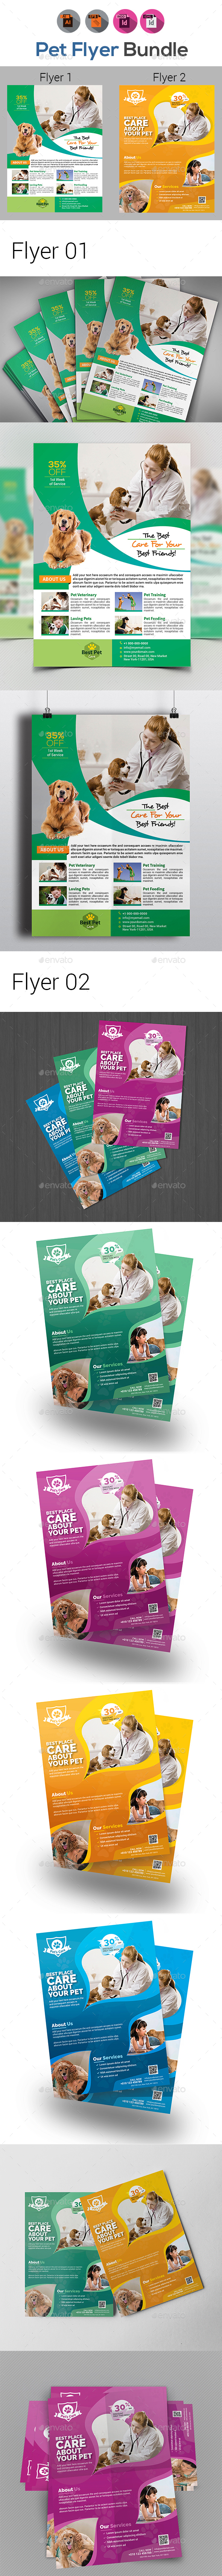 Pets Care Flyer Templates - Corporate Flyers